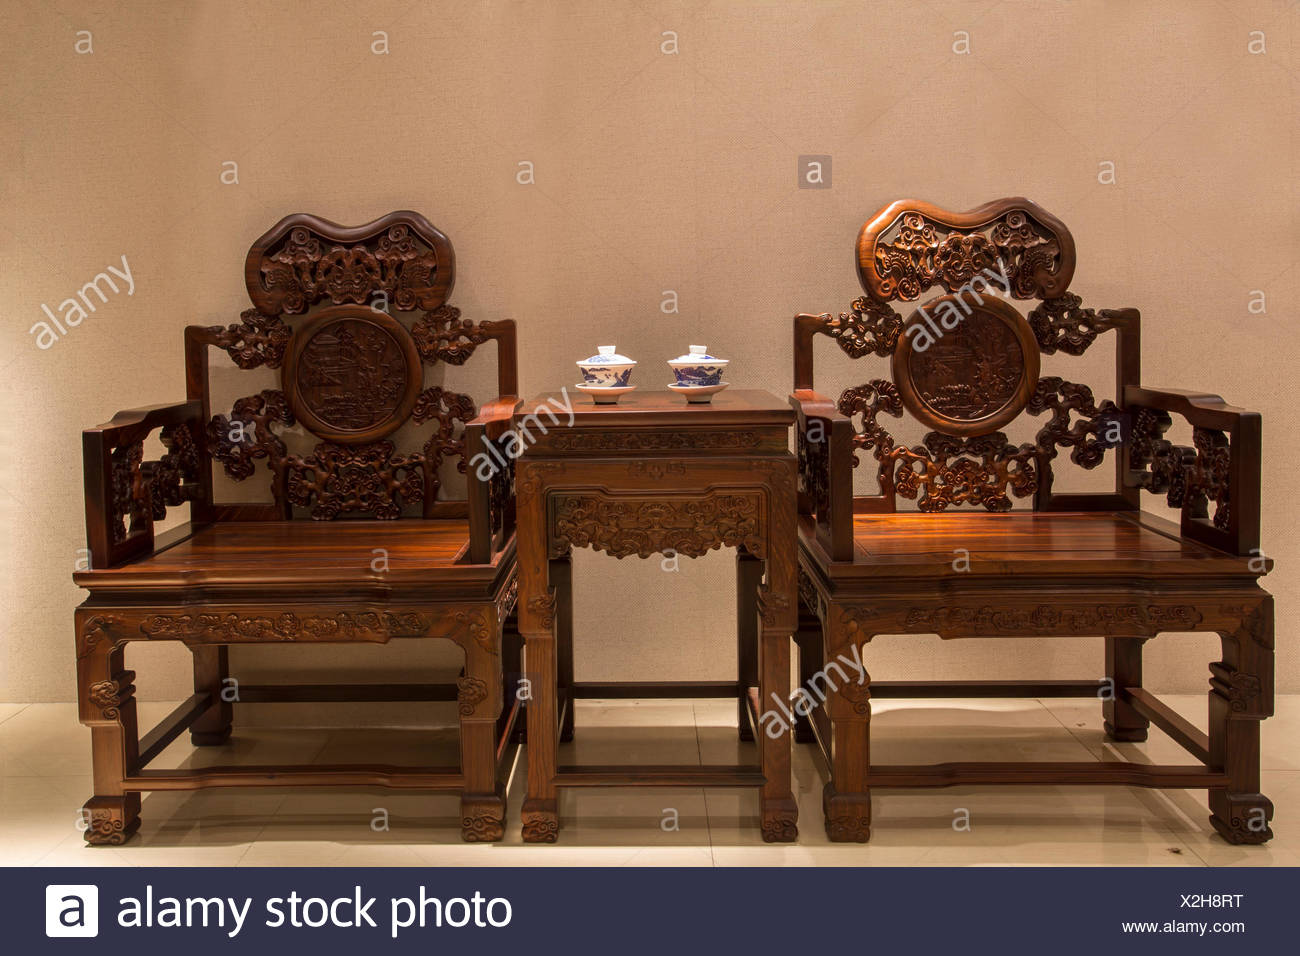 Merveilleux Traditional Chinese Woodcarving Furniture